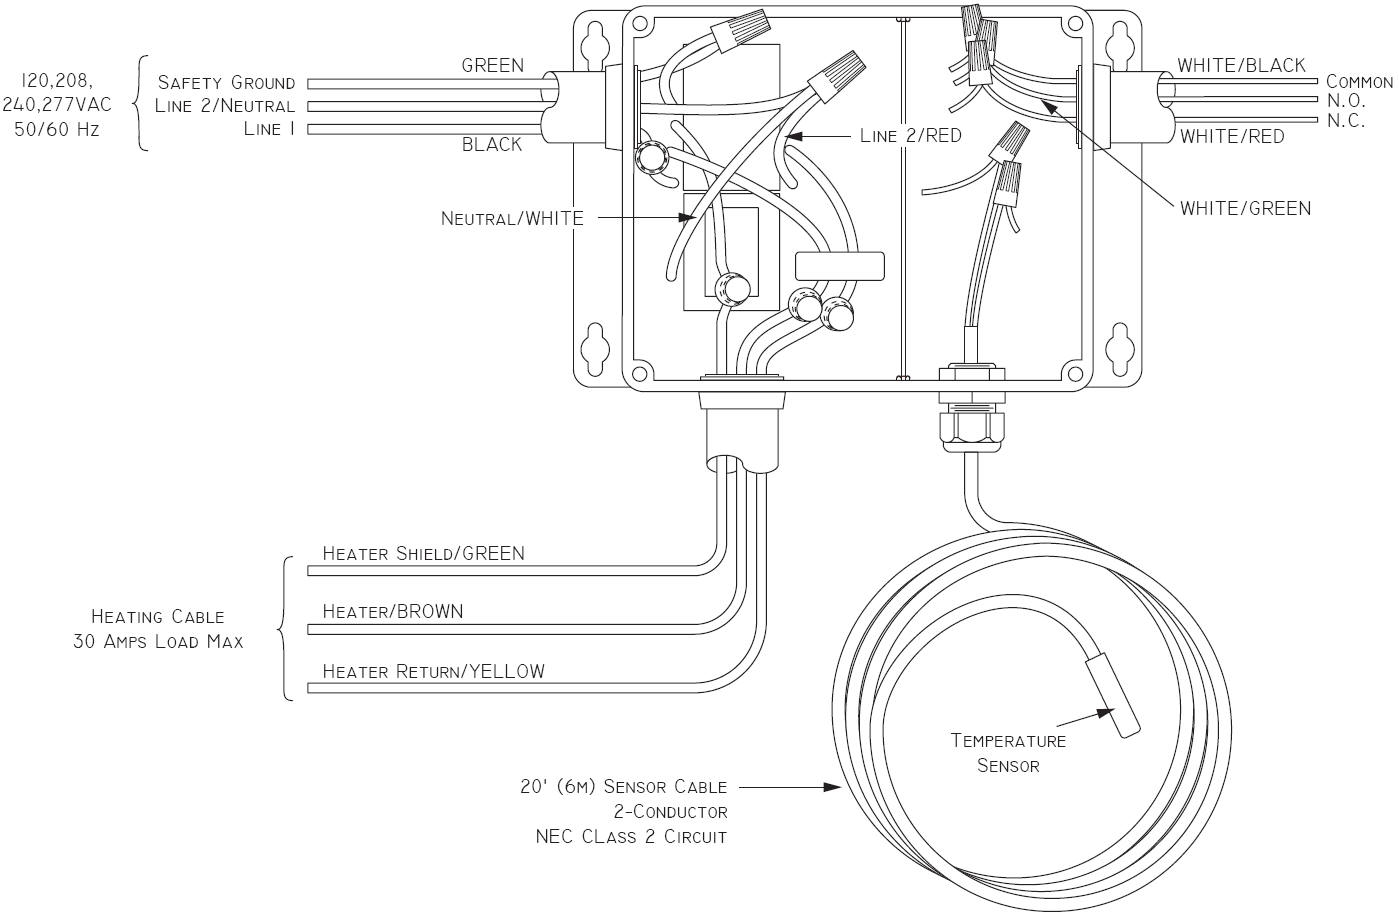 Qmark Heater Wiring Diagram on dayton gas, for p3lbx12f08001, for hz514, watlow immersion, graphical electric, raypak pool, atwood hot water, chromalox immersion, aerothermes gas unit,